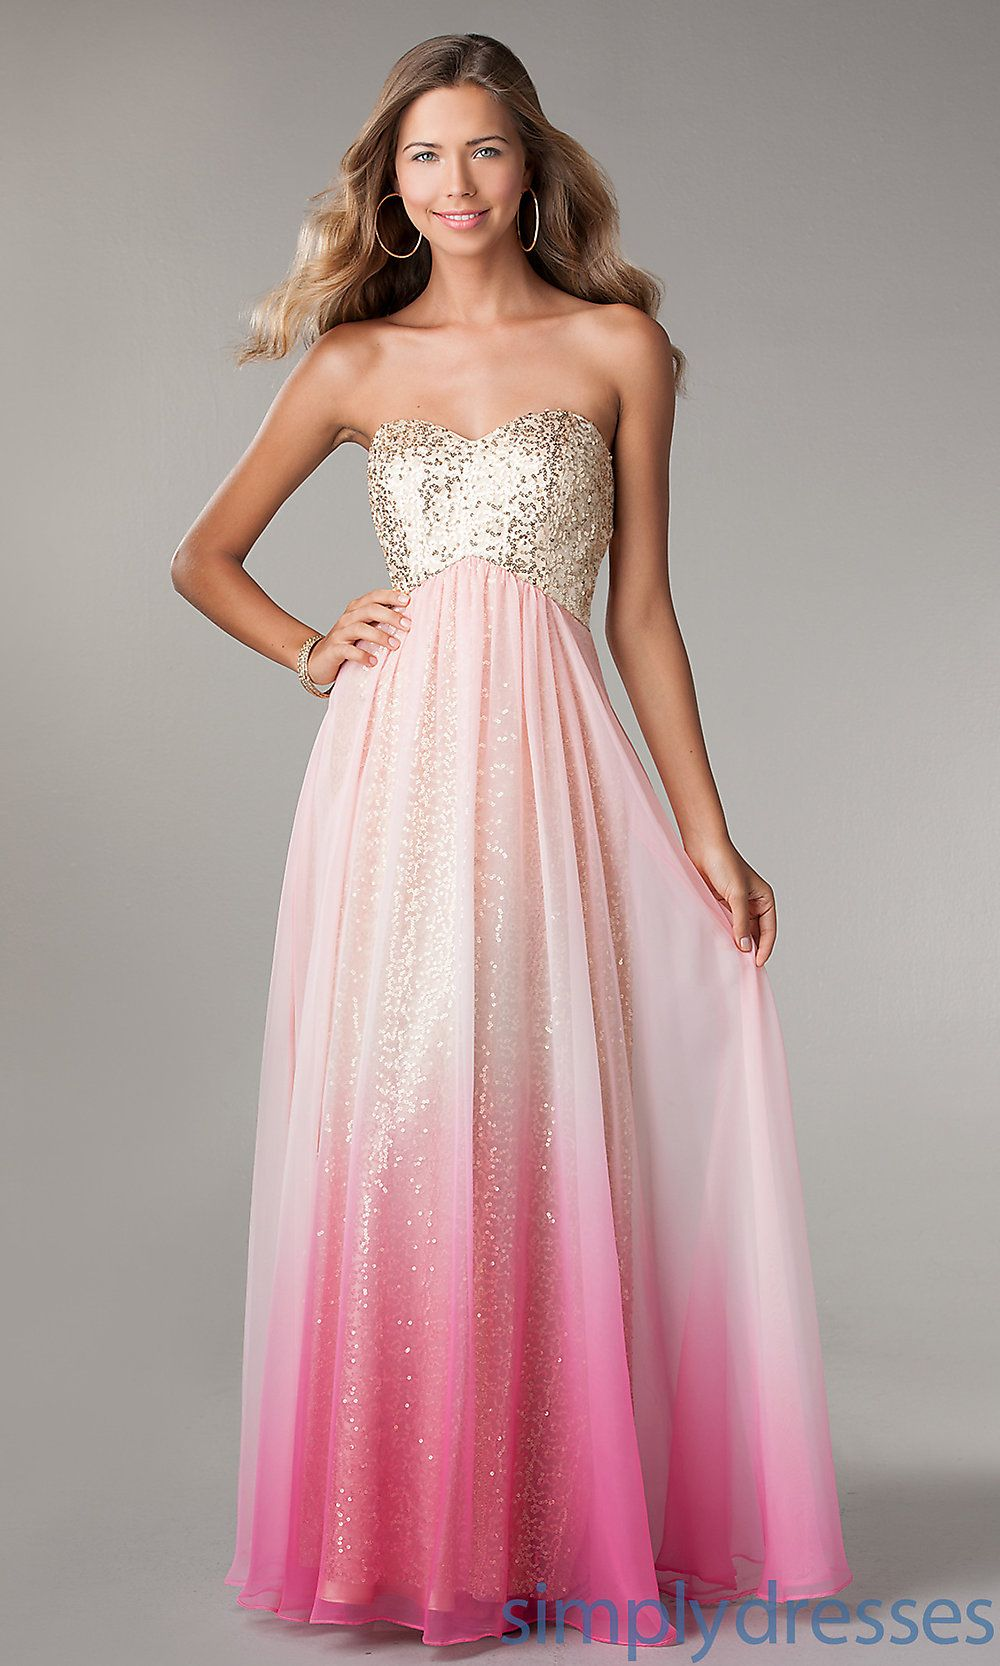 prom dresses - Google Search | dresses | Pinterest | Sequin gown ...